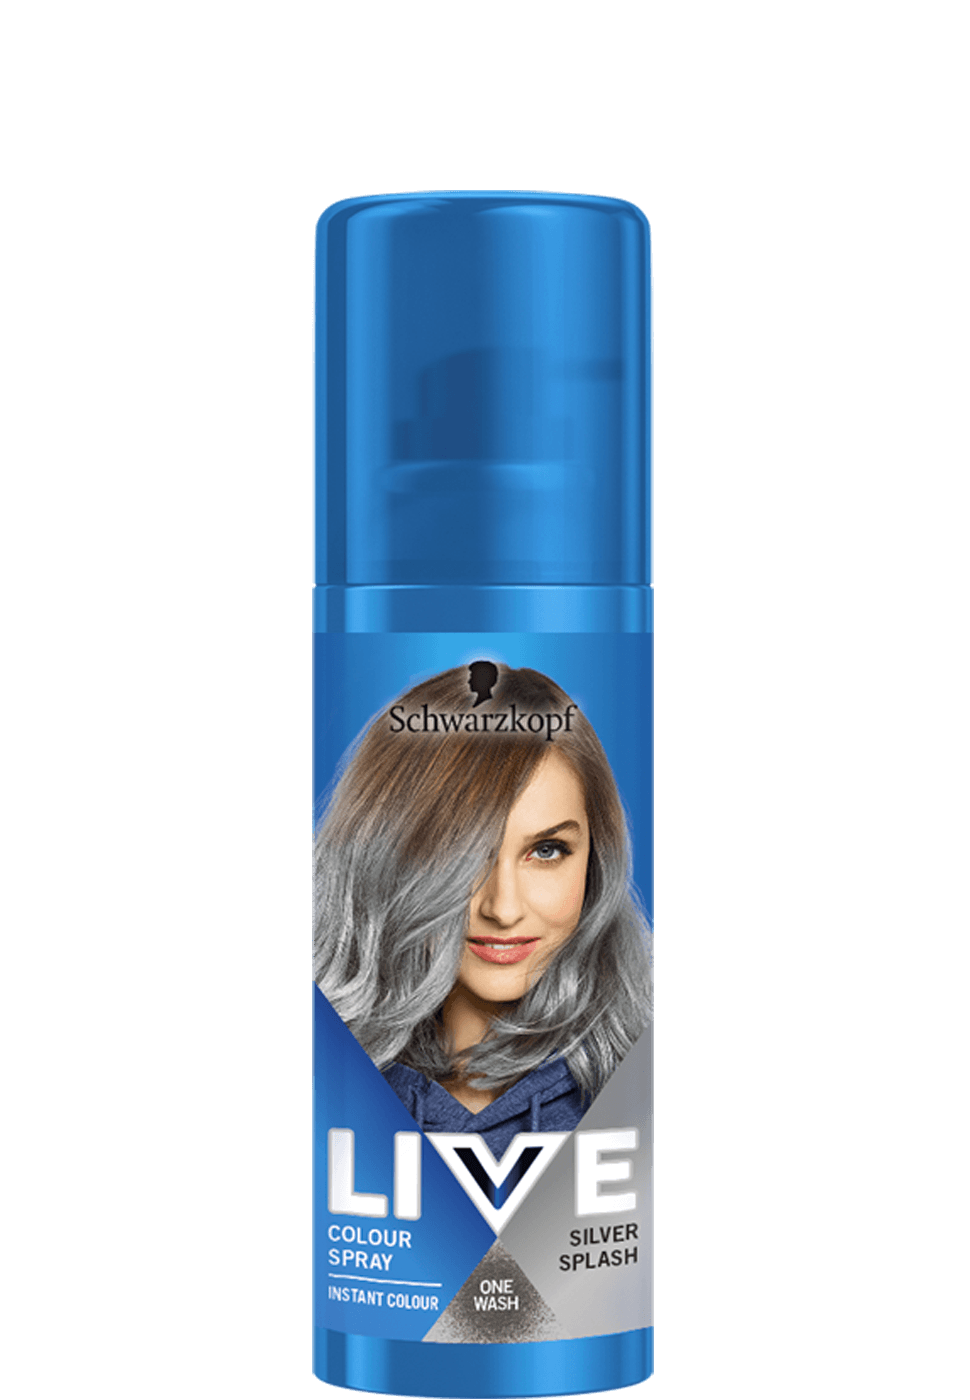 live_color_colour_spray_silver_splash